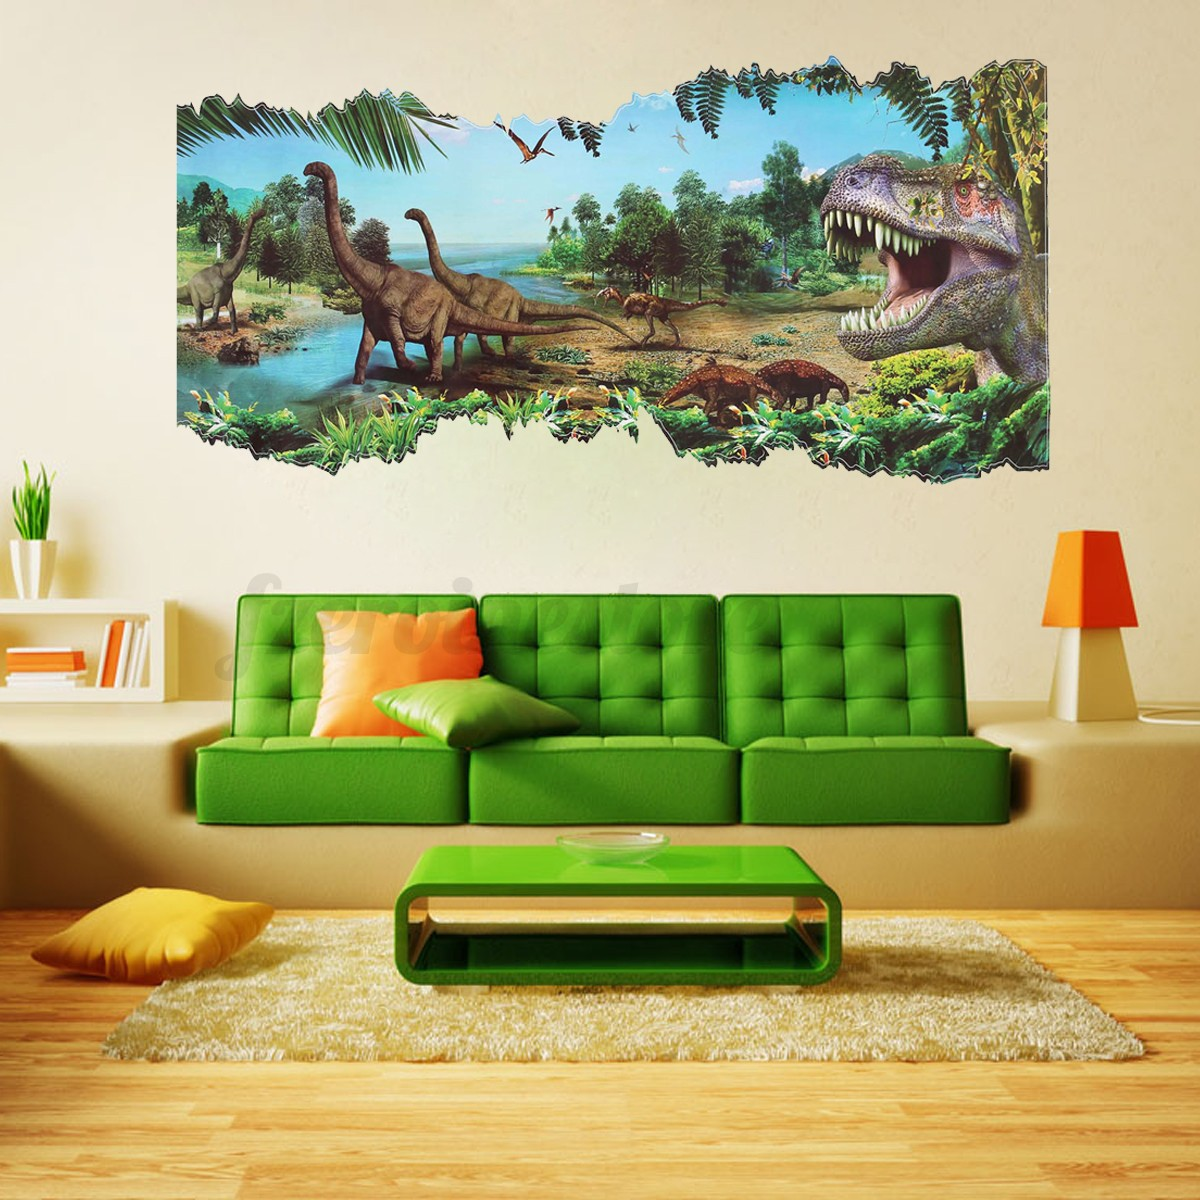 3d jurassic world park dinosaur wall sticker kids room for Dinosaur wall mural uk